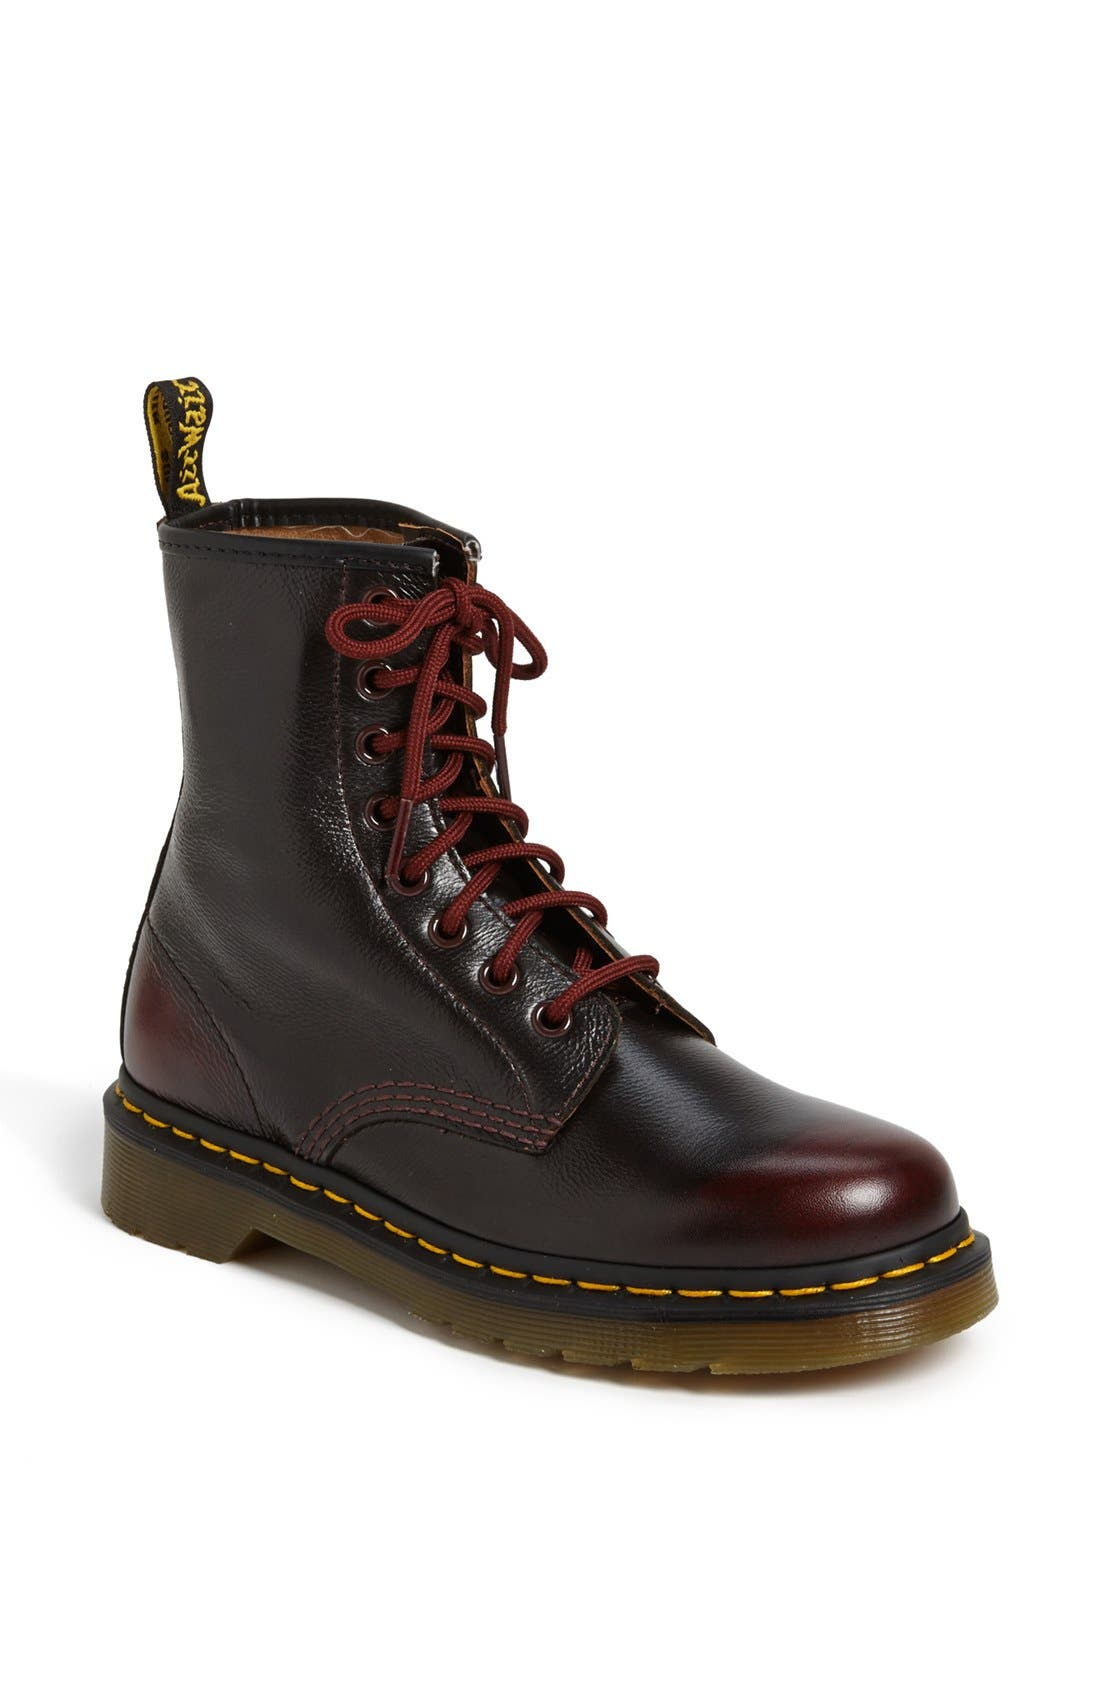 Main Image - Dr. Martens '1460 W' Boot (Women)